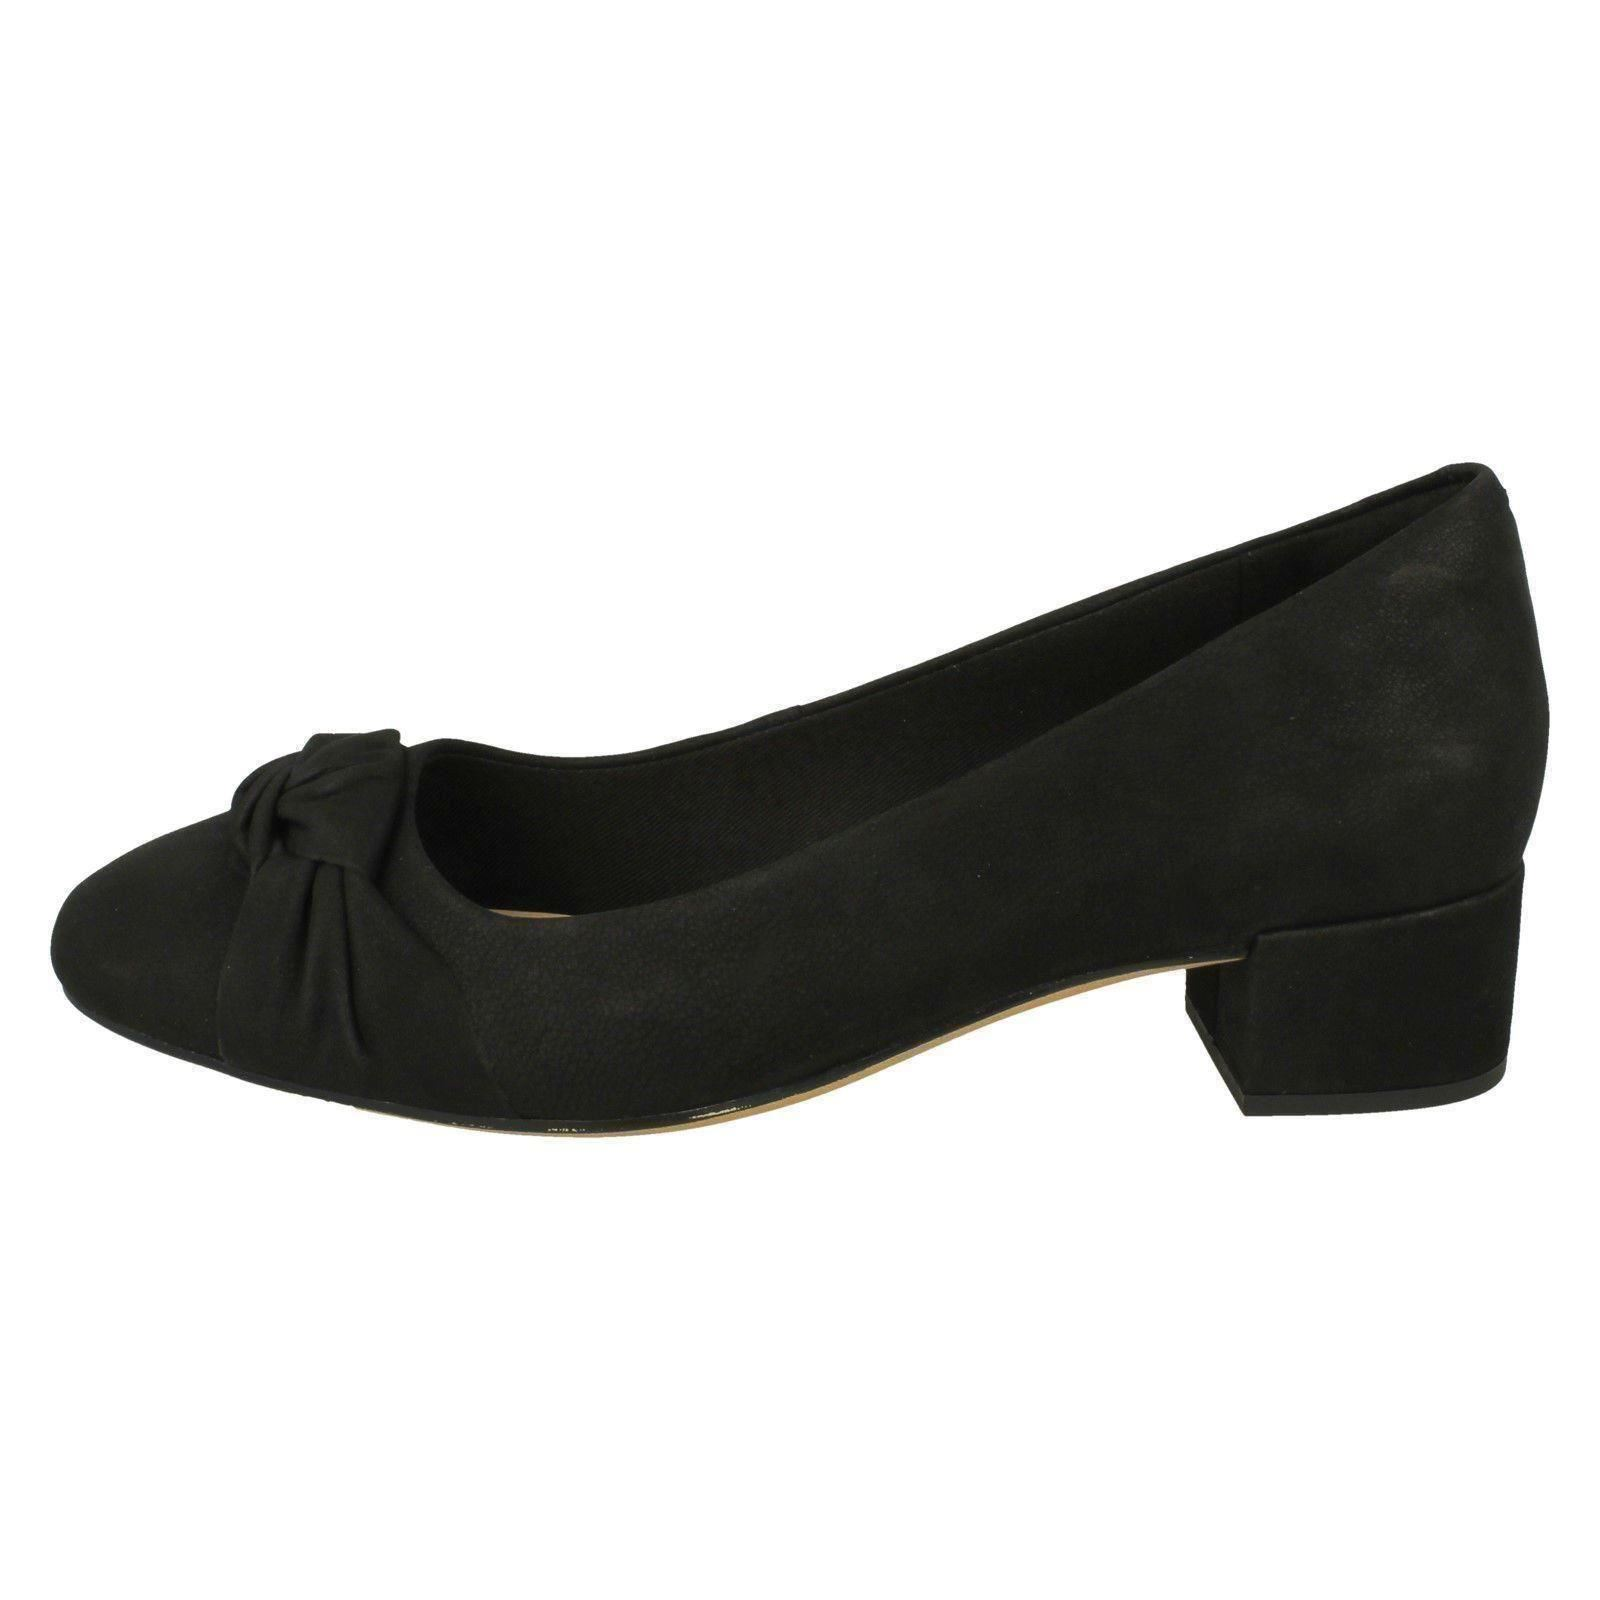 Damenschuhe Clarks Heel Bow Detailed Block Heel Clarks Schuhes 'Orabella Lily' be195e